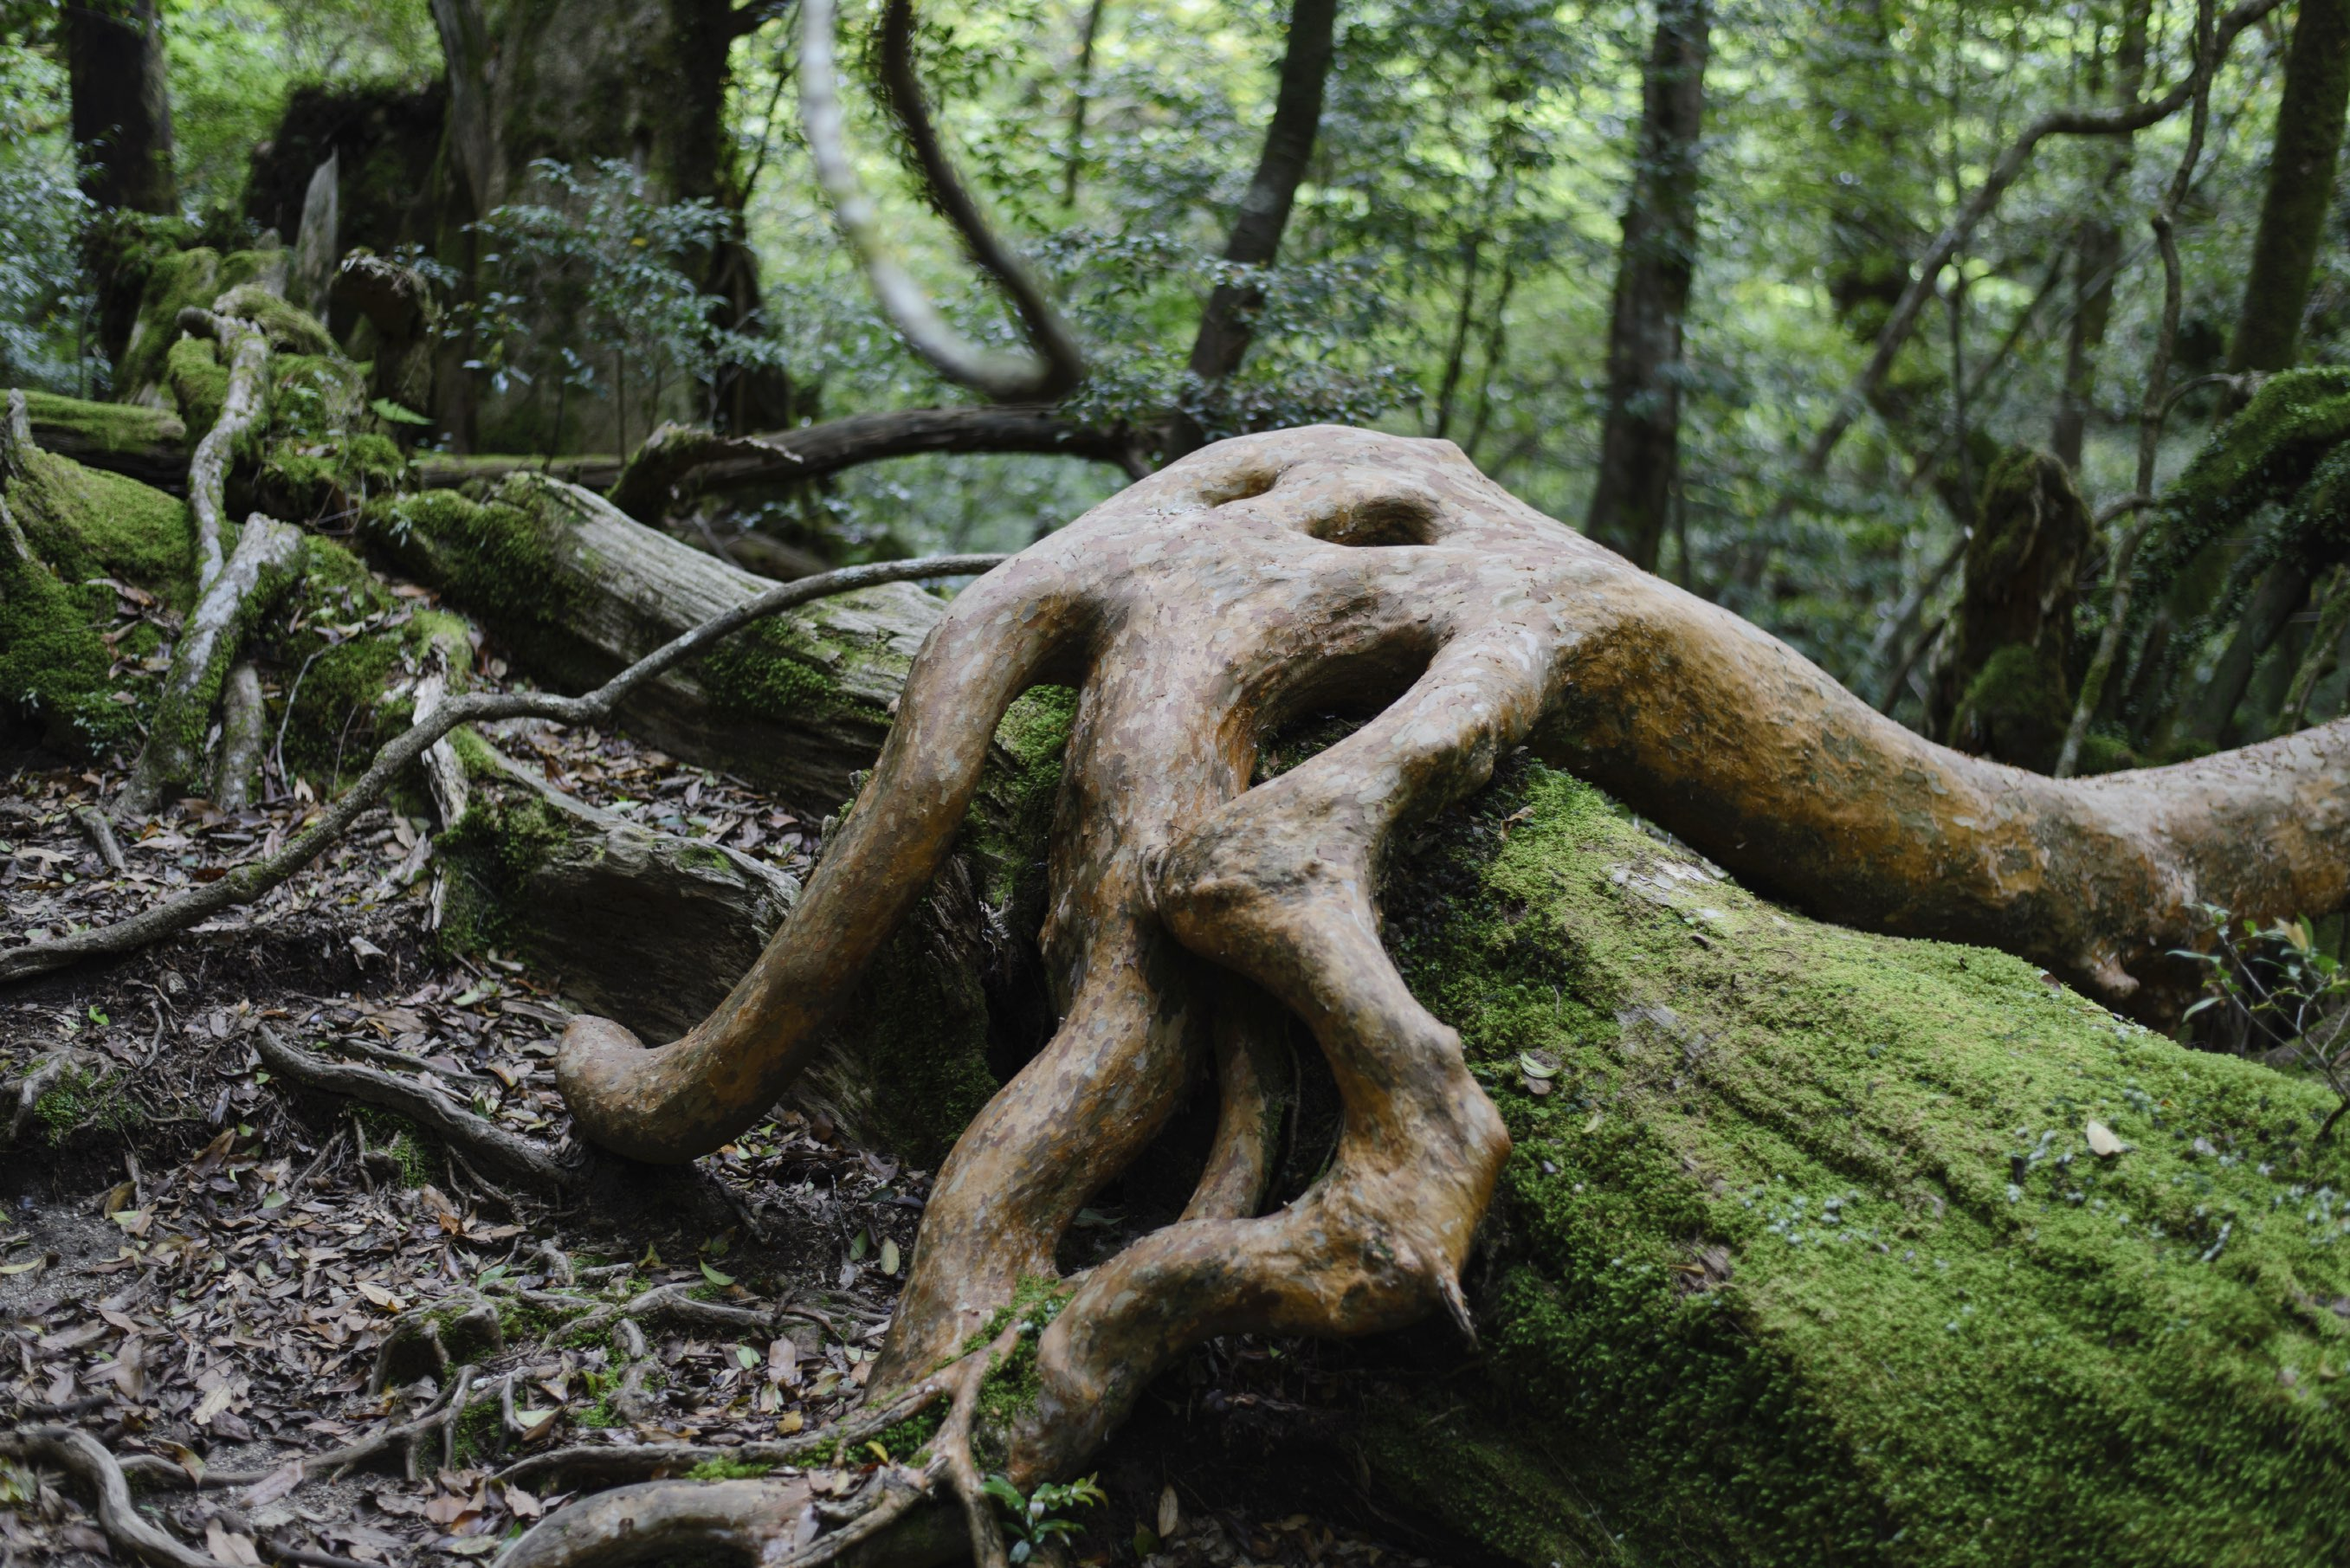 The incredible Yakushima forest has some of the most breathtaking hiking routes in Japan.